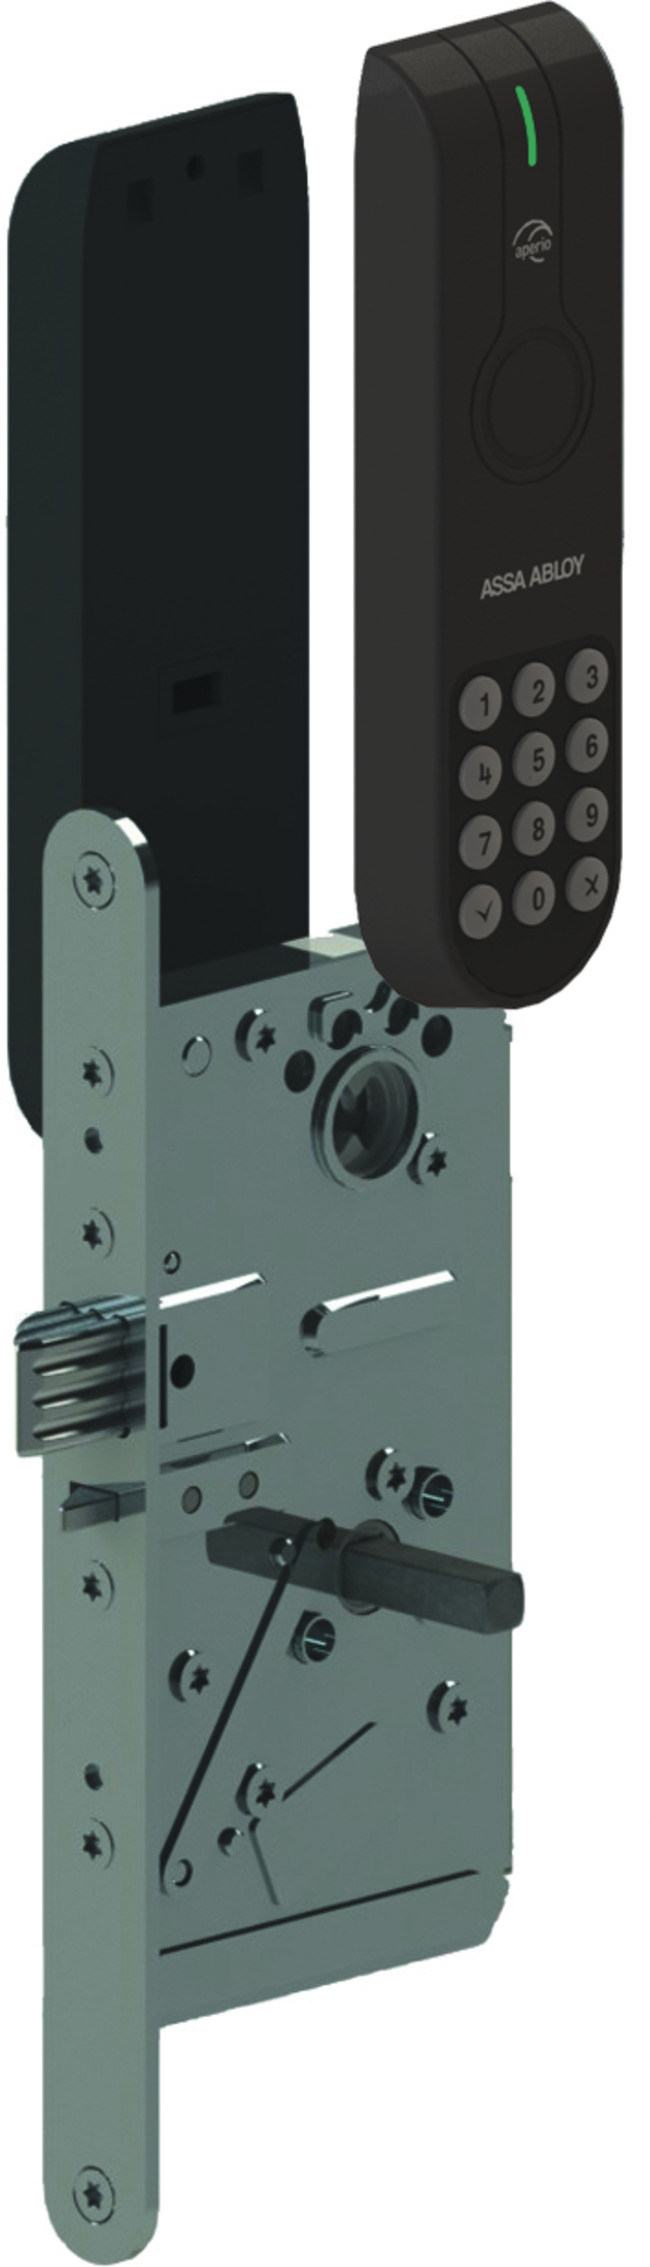 Electronic Lock With Standard Rfid Reader Finnisches